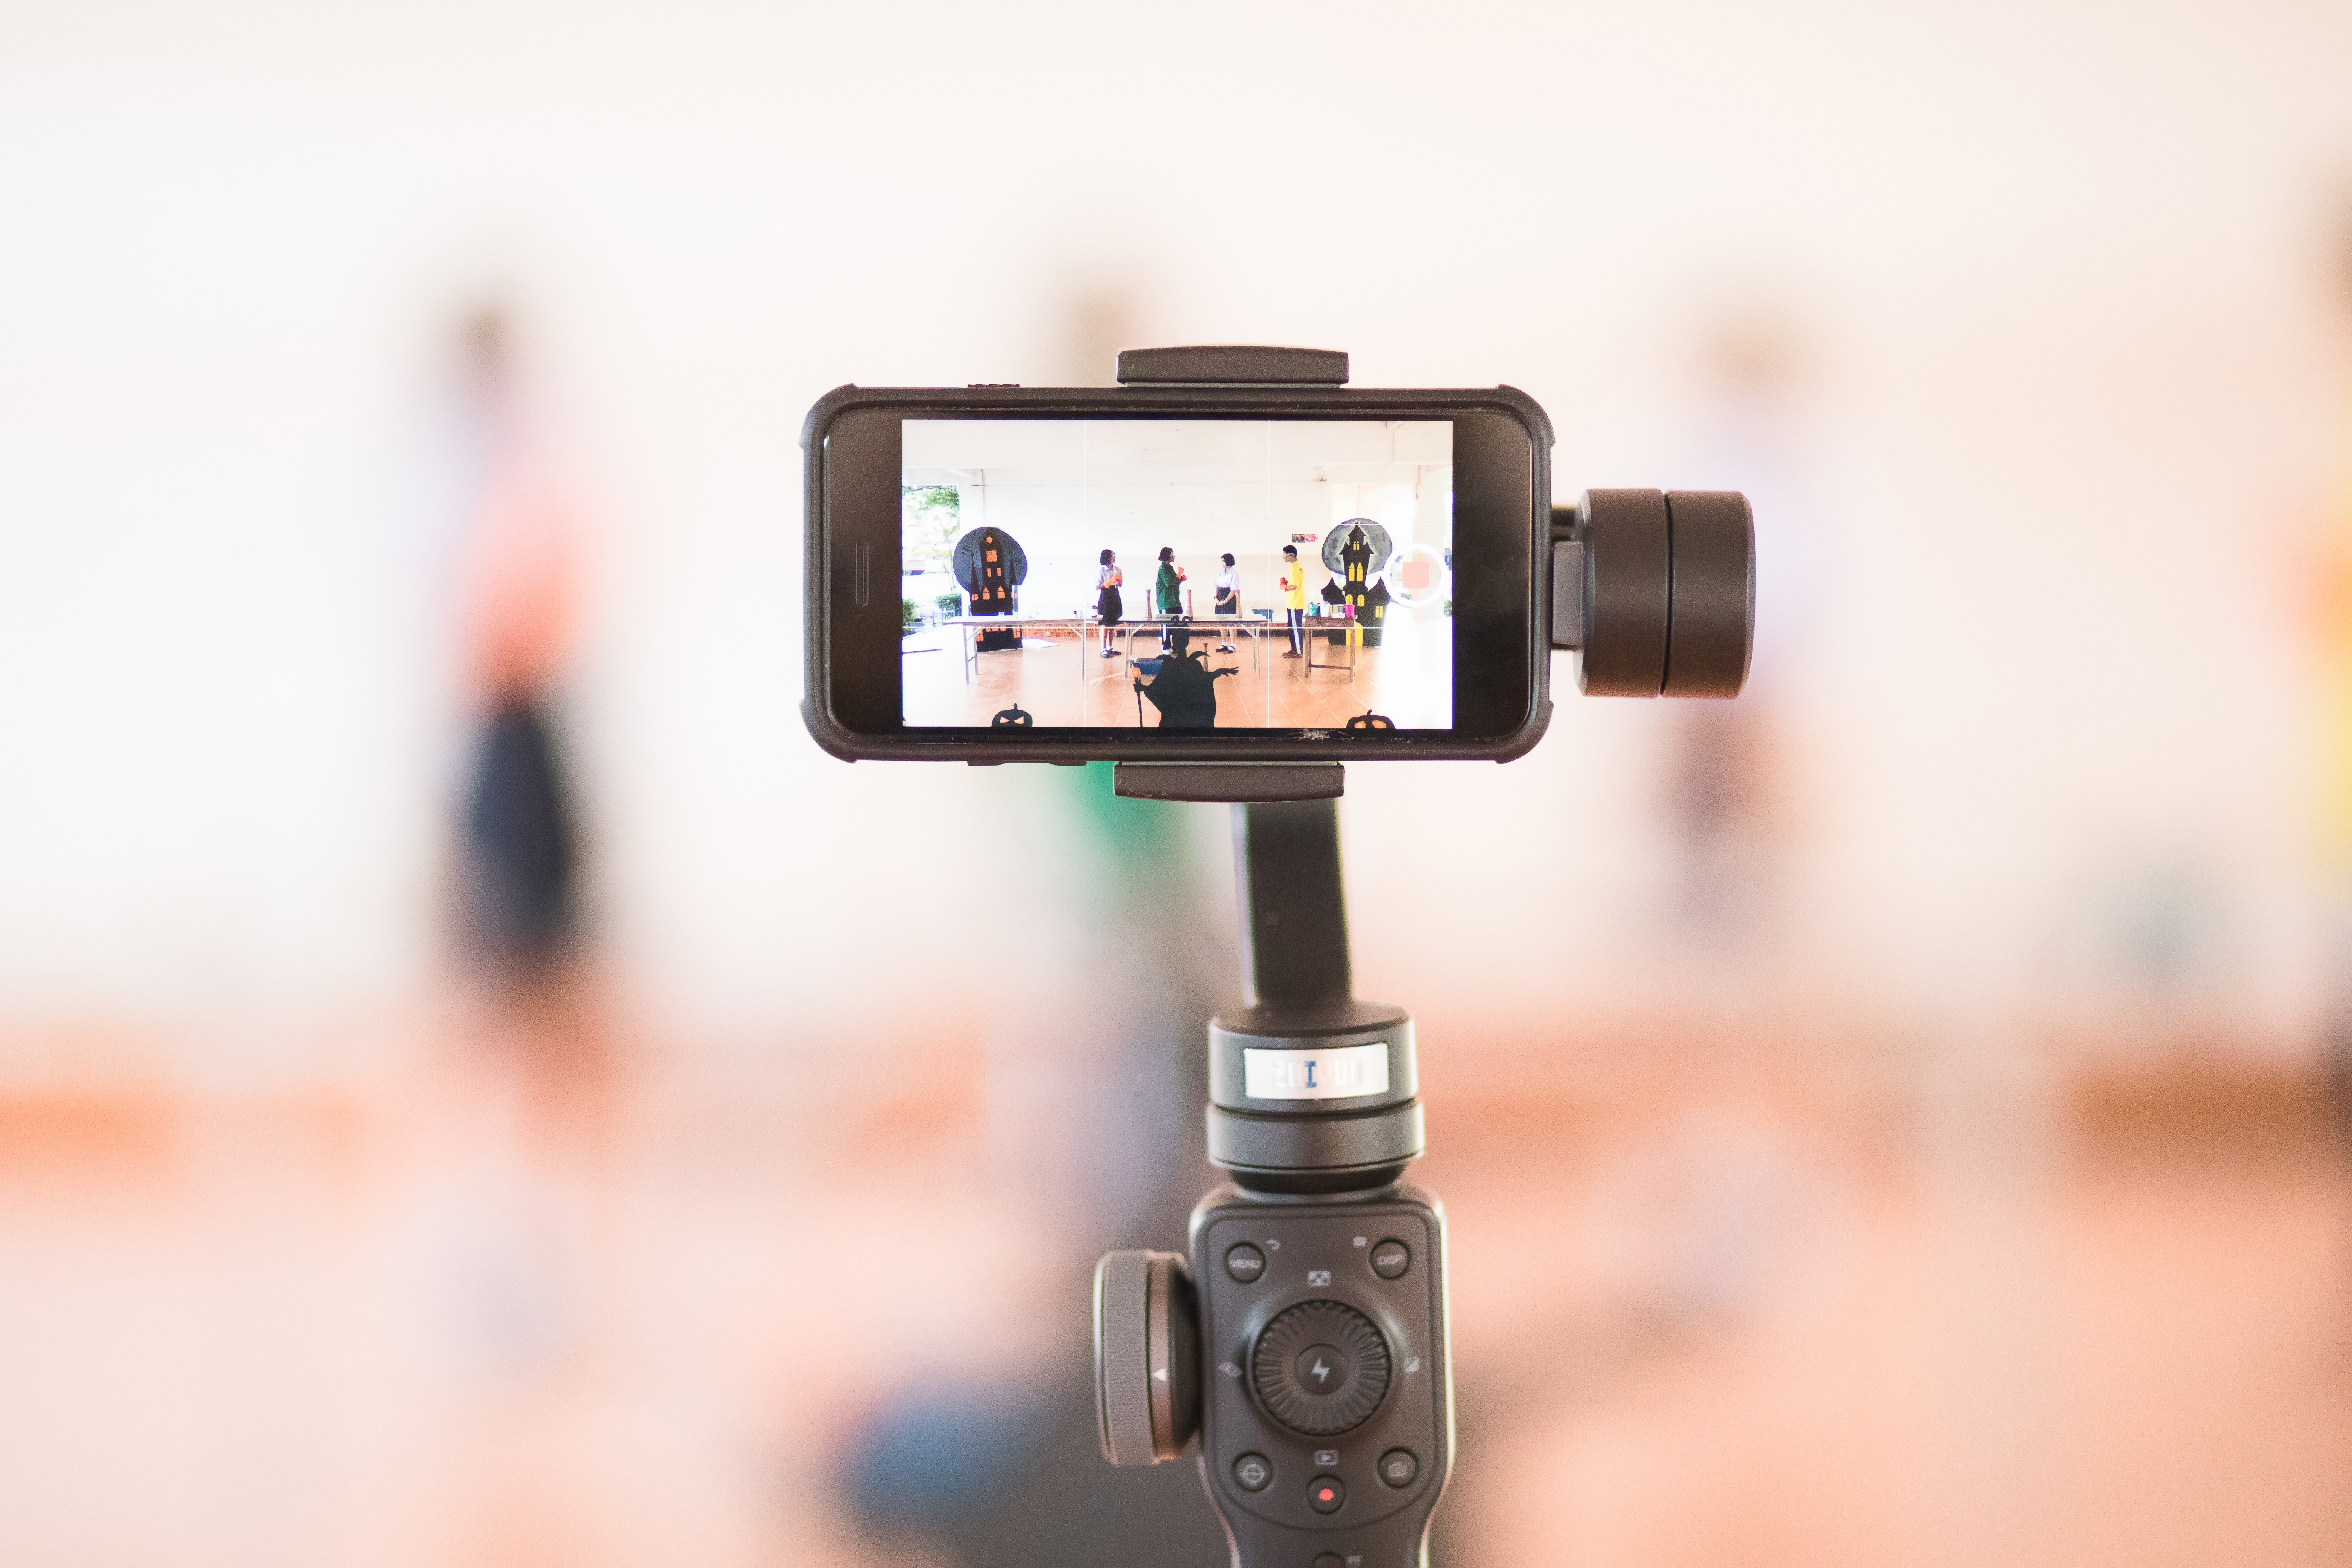 Creating videos for small businesses can be hard; Vimeo wants to change that